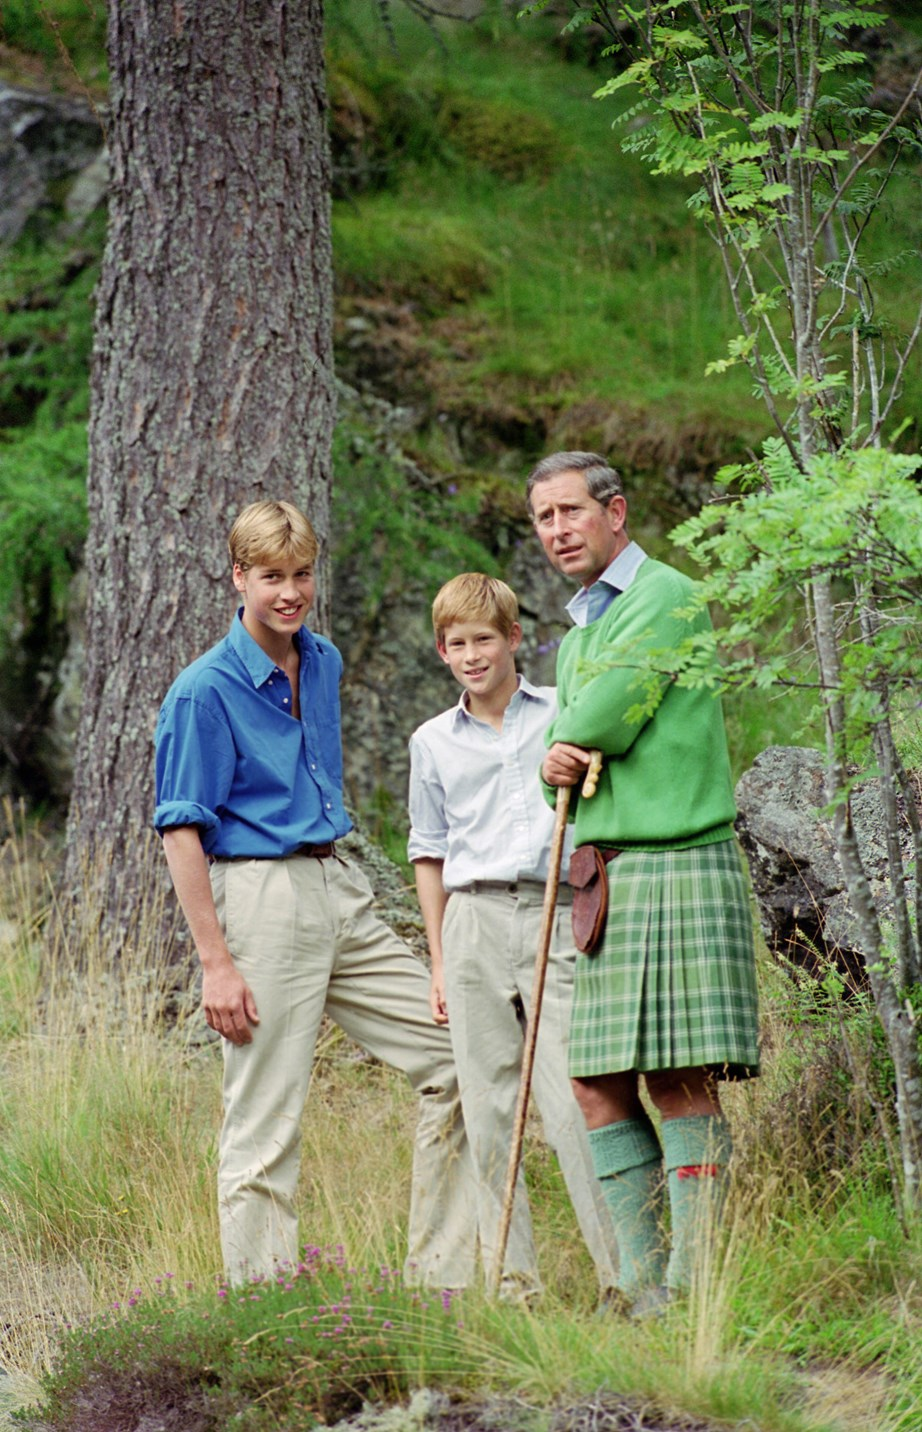 "*Prince William with his father Prince Charles and brother Prince Harry visiting Glen Muick on the Balmoral Estate in 1997.* <br><br> **Making your grandmother displeased is bad enough, but imagine if she was also the Queen:** <br><br> During an interview ahead of the Queen's Diamond Jubilee in 2012, Prince William was asked what he's learned growing up, to which he replied: ""I learned from growing up, you don't mess with your grandmother!"" <br><br> *(Image: Getty)*"